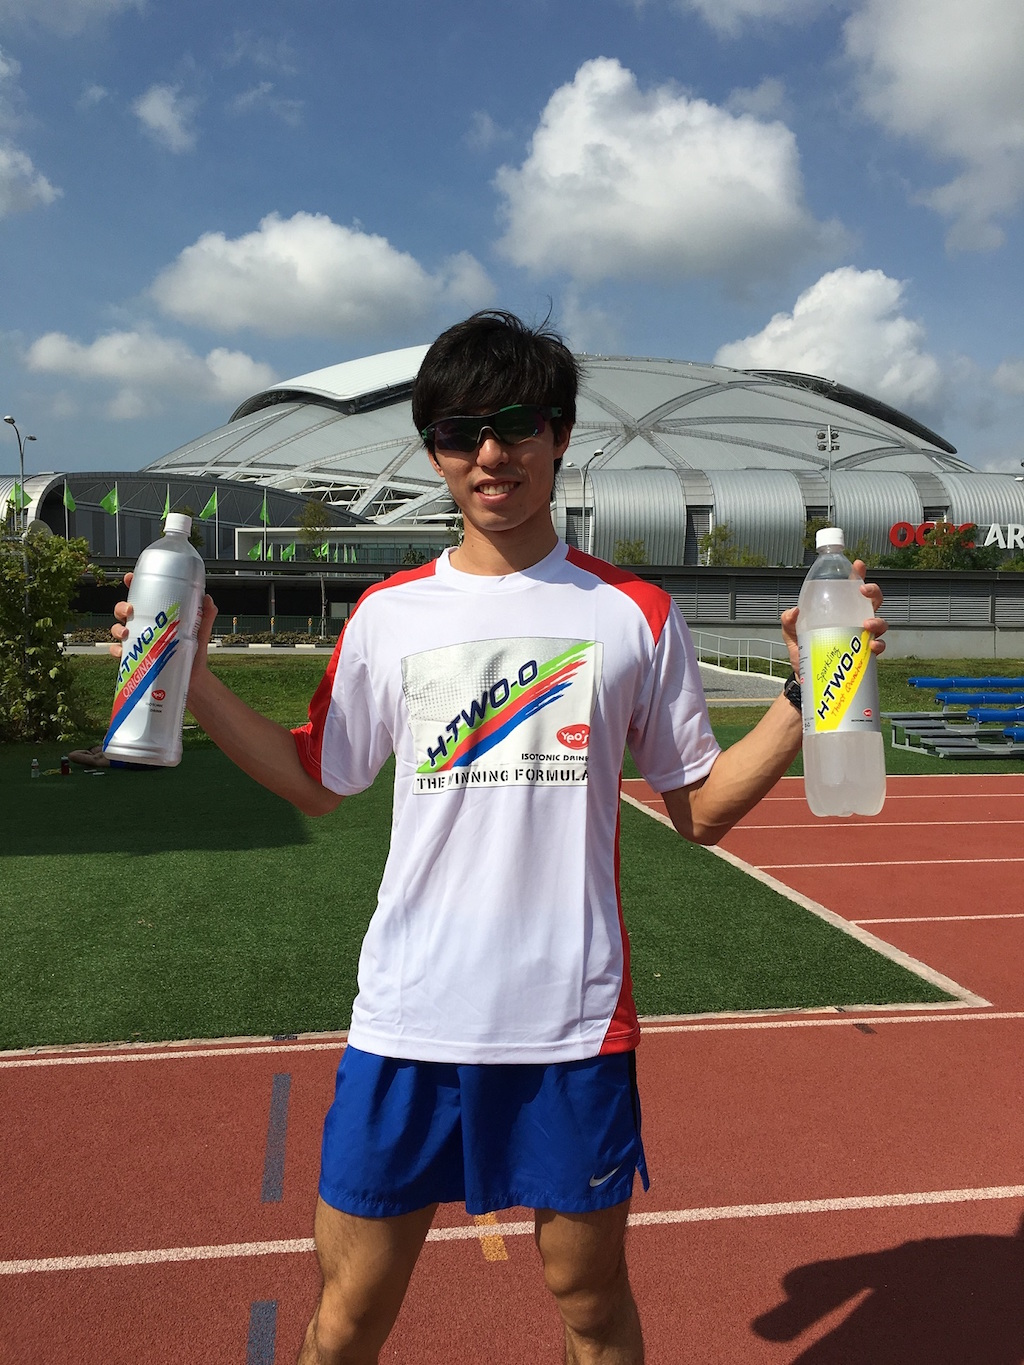 Singapore national marathoner Soh Rui Yong will be the new face to front popular isotonic drink H-TWO-O/Yeo's 2016 ad campaign for local leading food and beverage company, YHS.